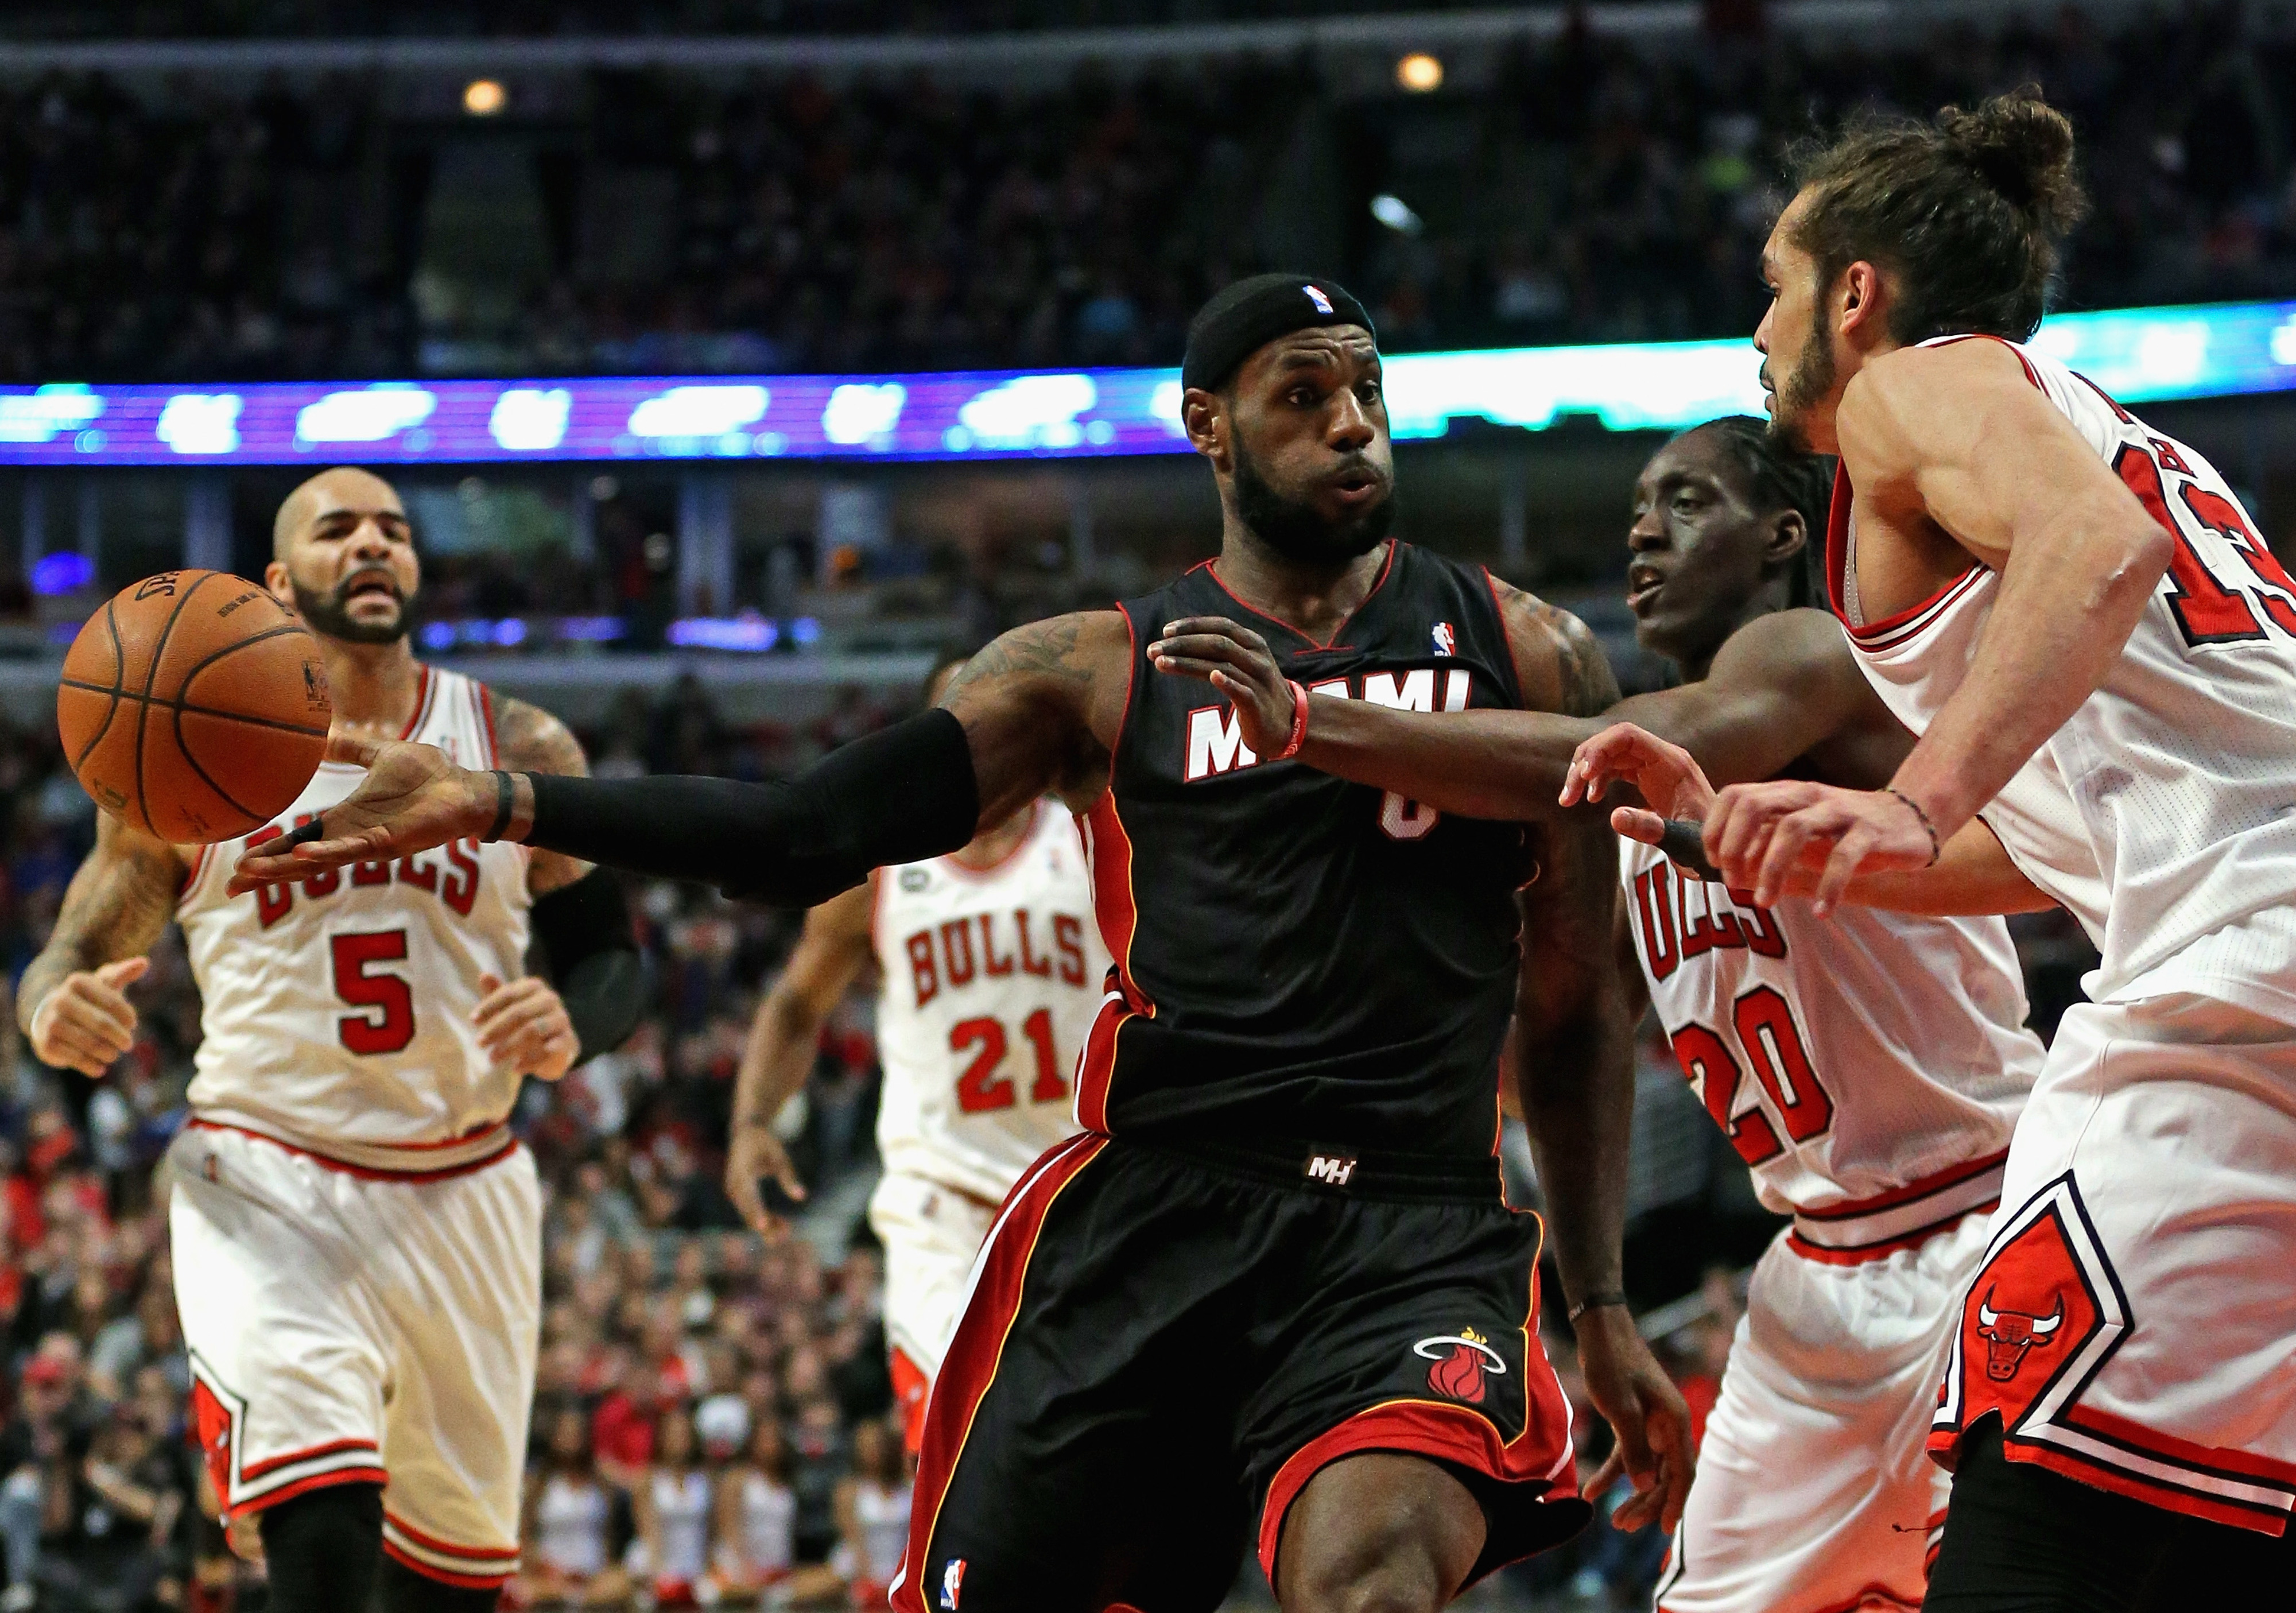 Heat vs. Bulls final score: Joakim Noah pushes Chicago to 95-88 overtime win